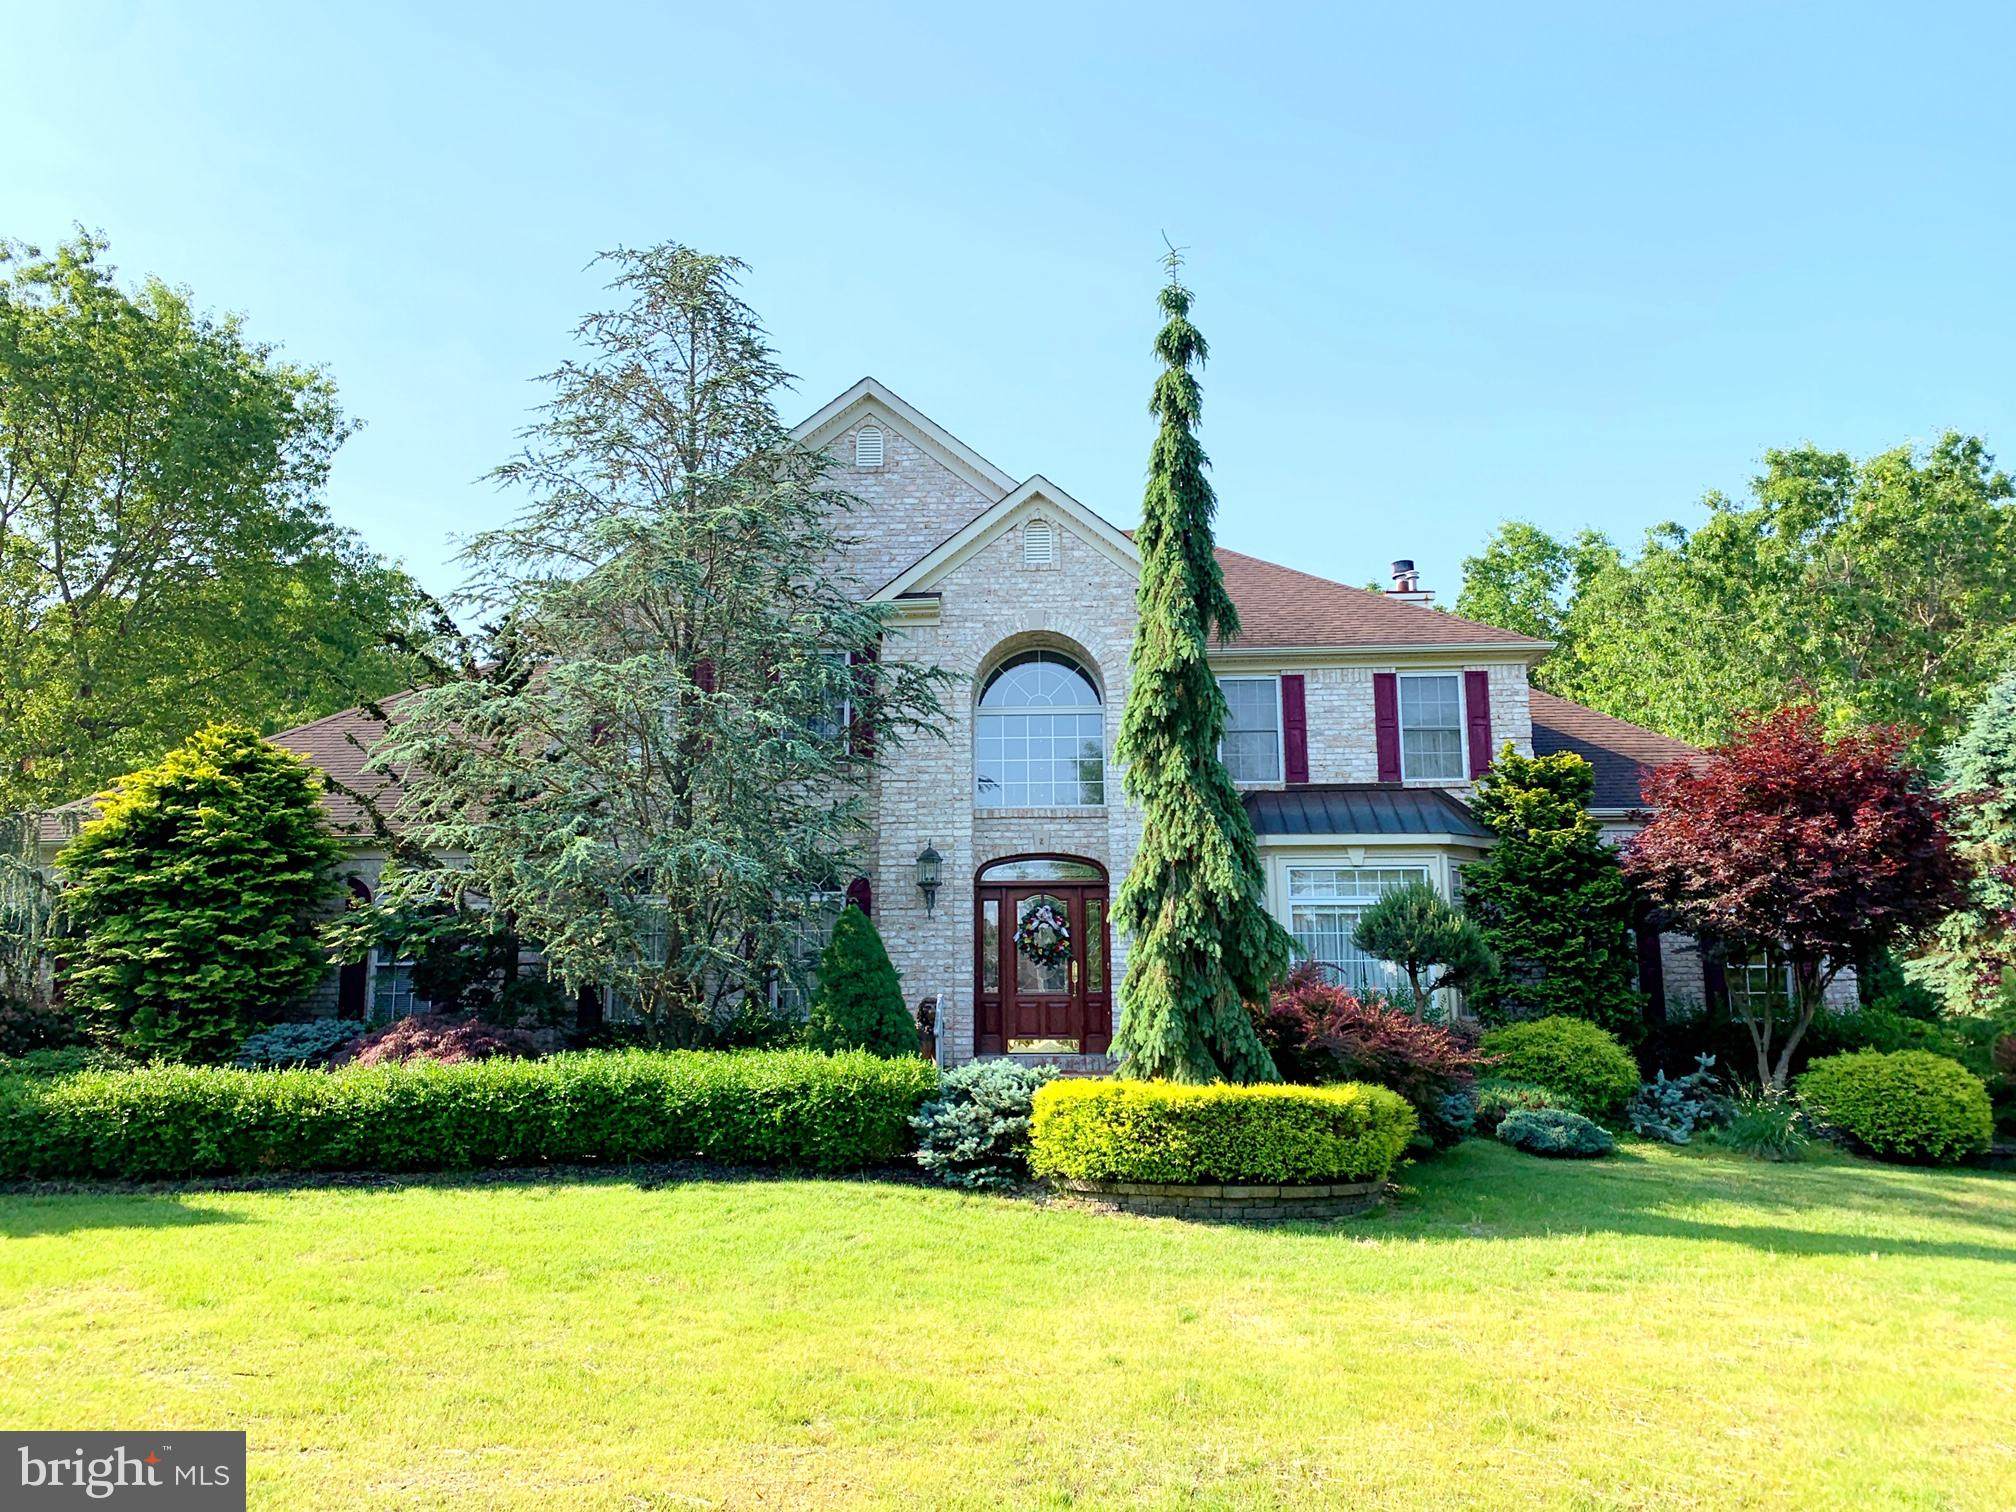 9 ALYSSA ROSE LANE, JACKSON, NJ 08527